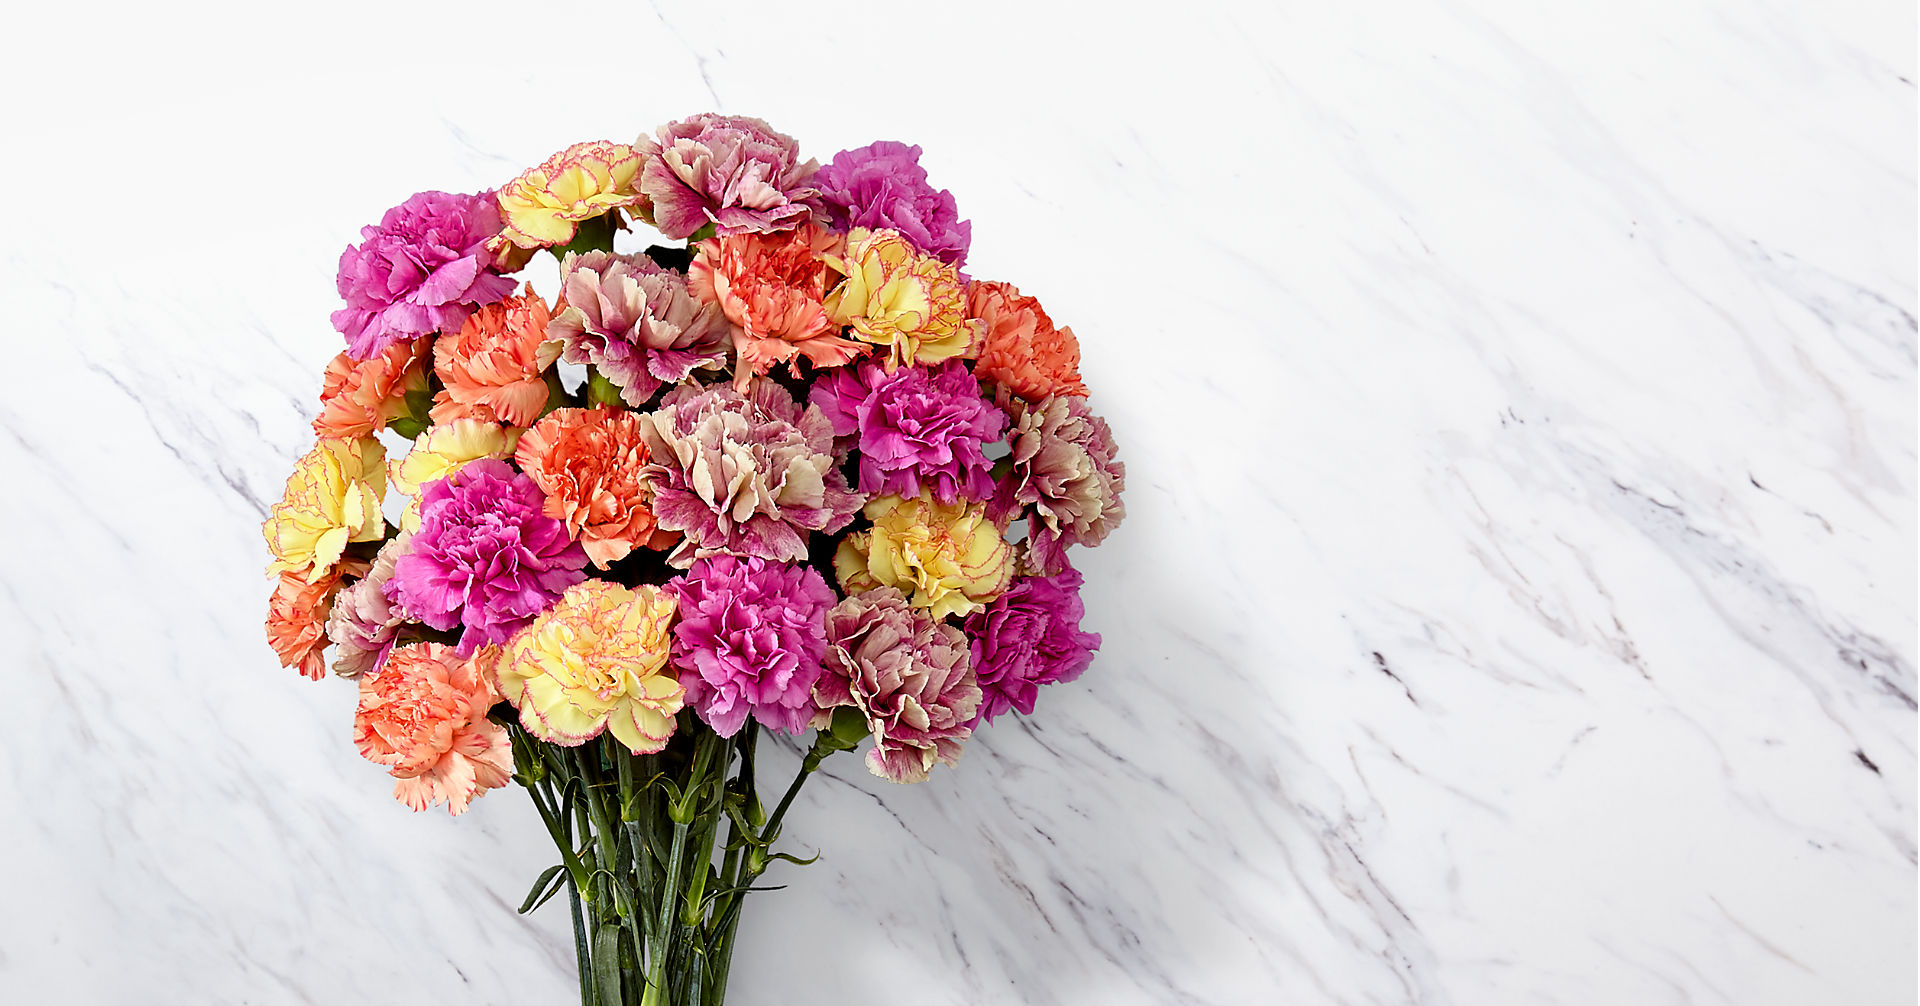 Sweet Carnations Bouquet - Image 1 Of 3